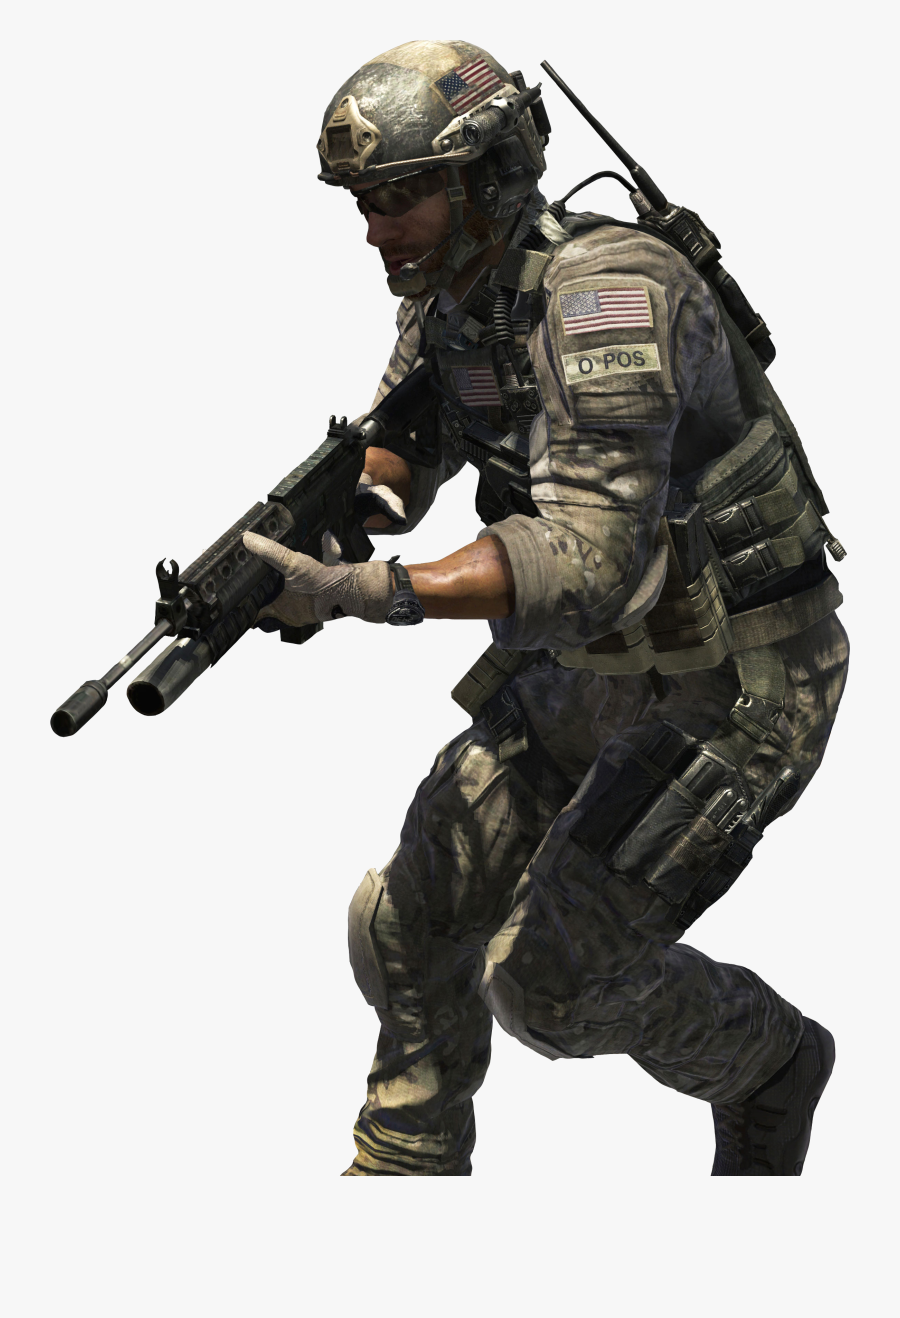 Call Of Duty Png Transparent Images - Call Of Duty Modern Warfare 3 Sandman, Transparent Clipart